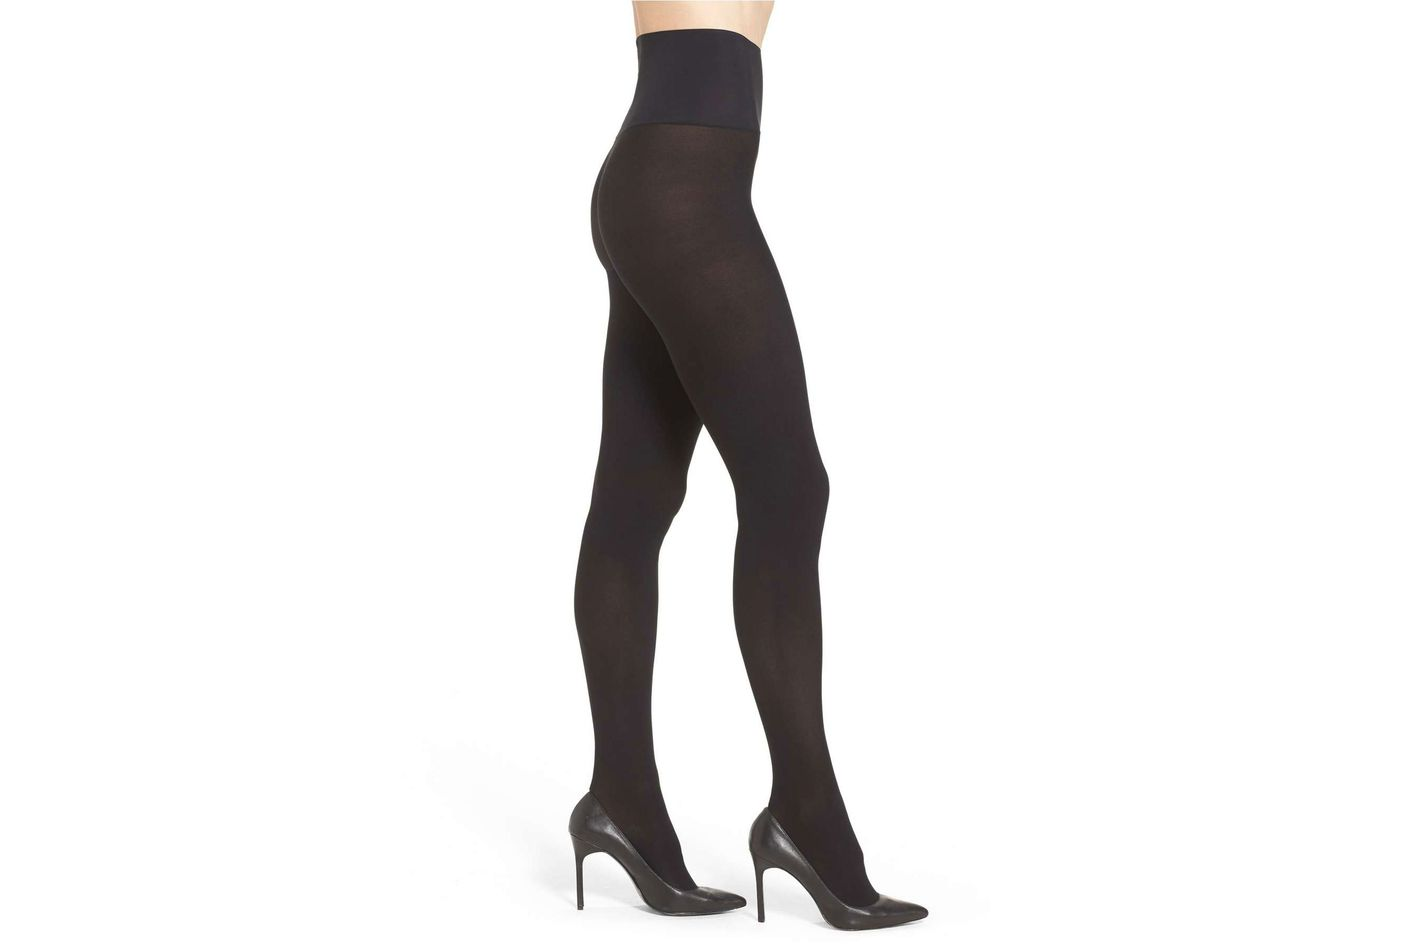 f9ece1d87 8 Best Black Tights Women 2017  Opaque